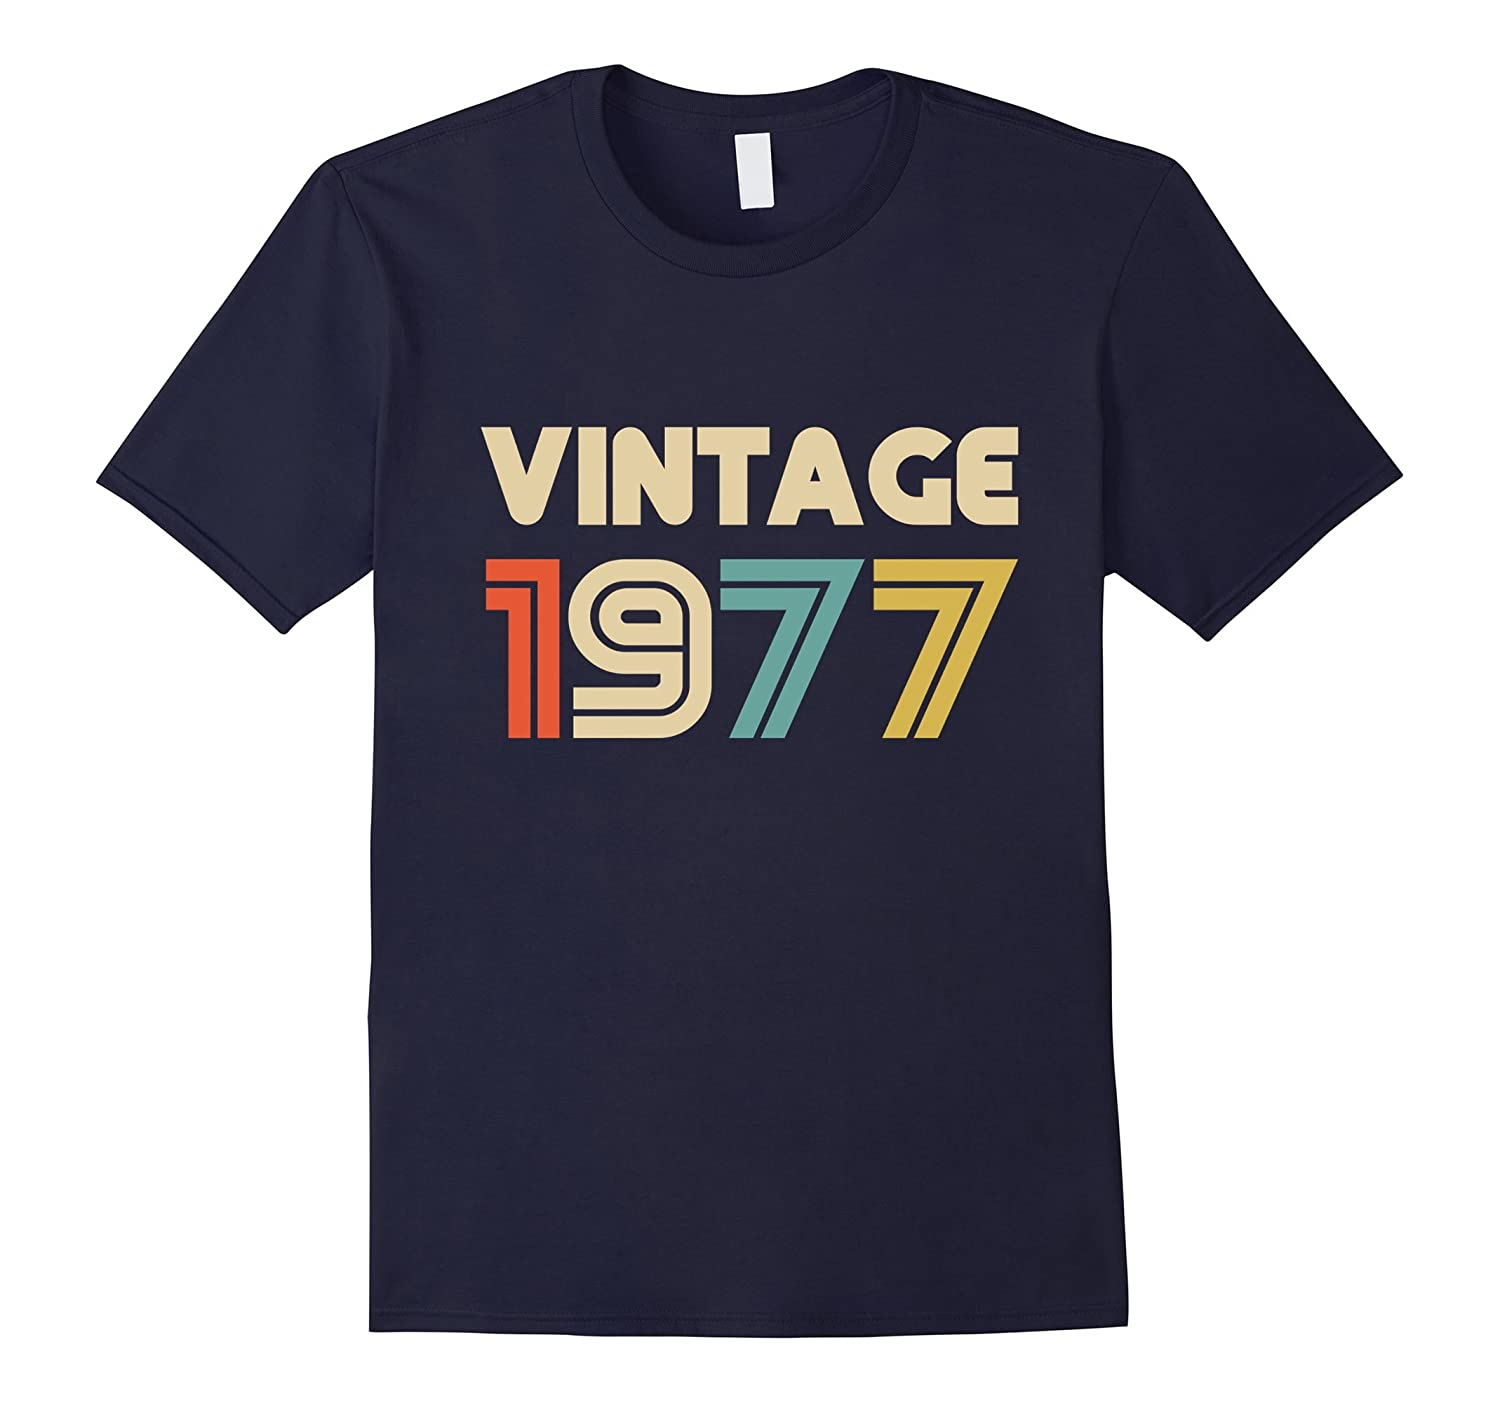 Vintage 1977 40th Birthday Gift T Shirt for Men & Women-T-Shirt